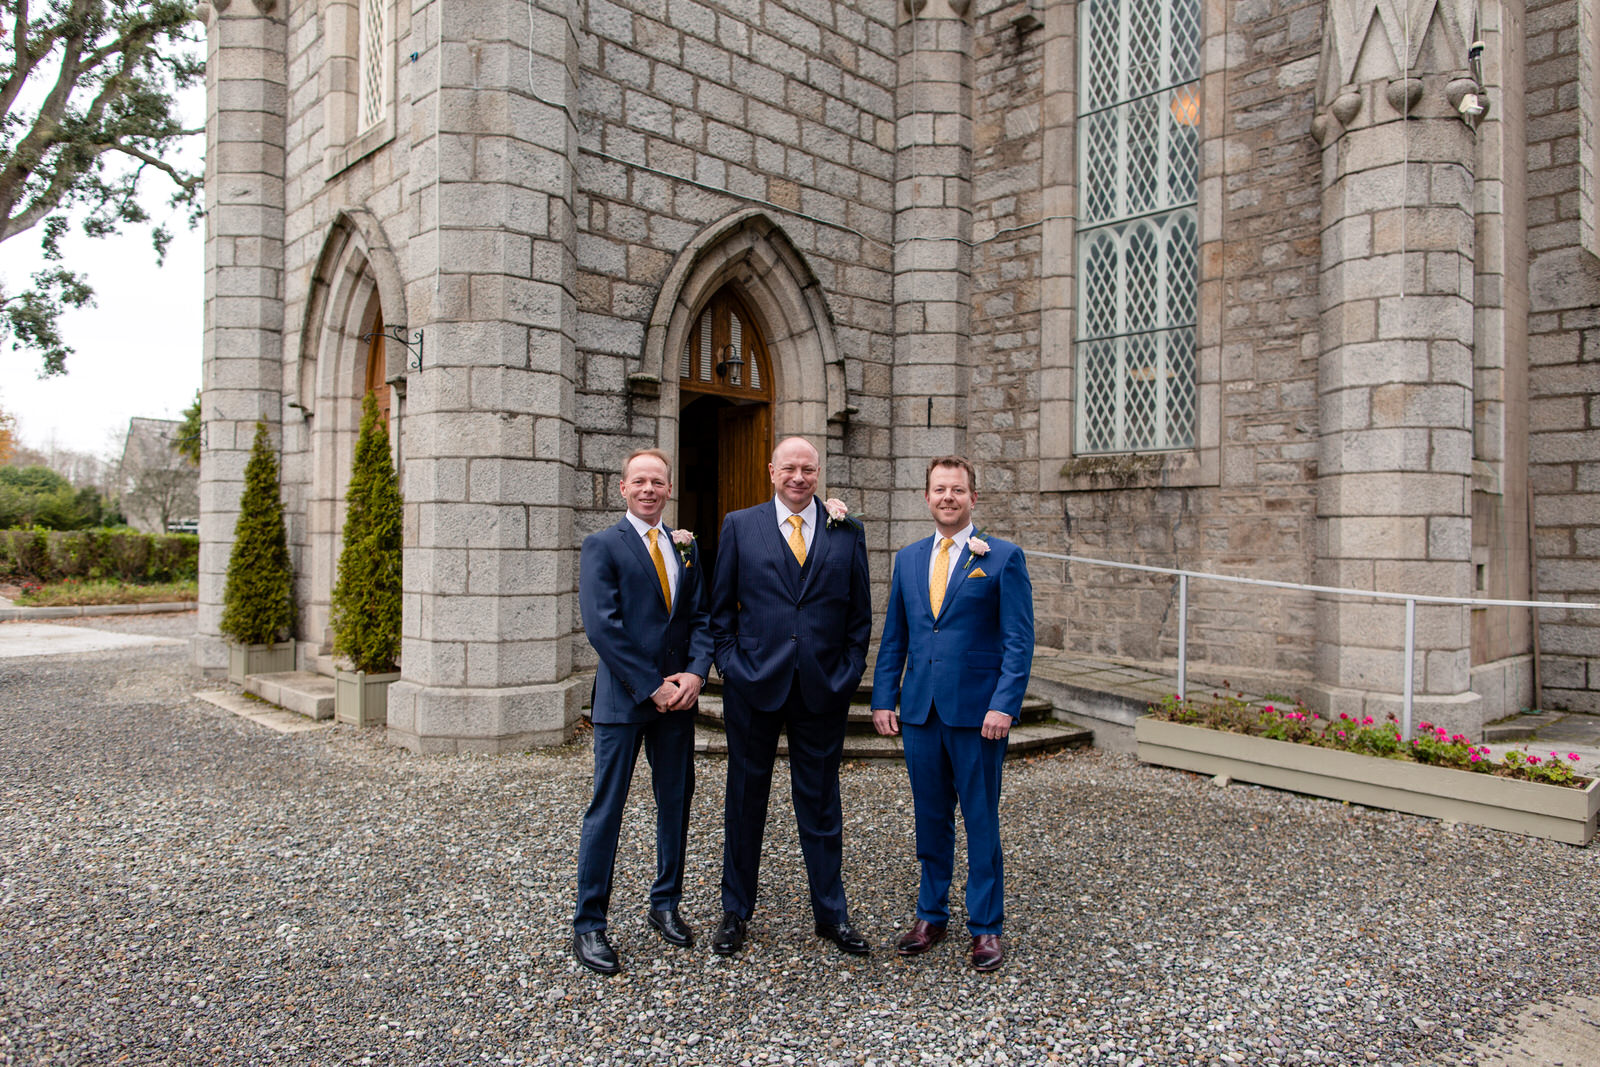 Roger-kenny-wedding-photographer-wicklow-glenview_019.jpg